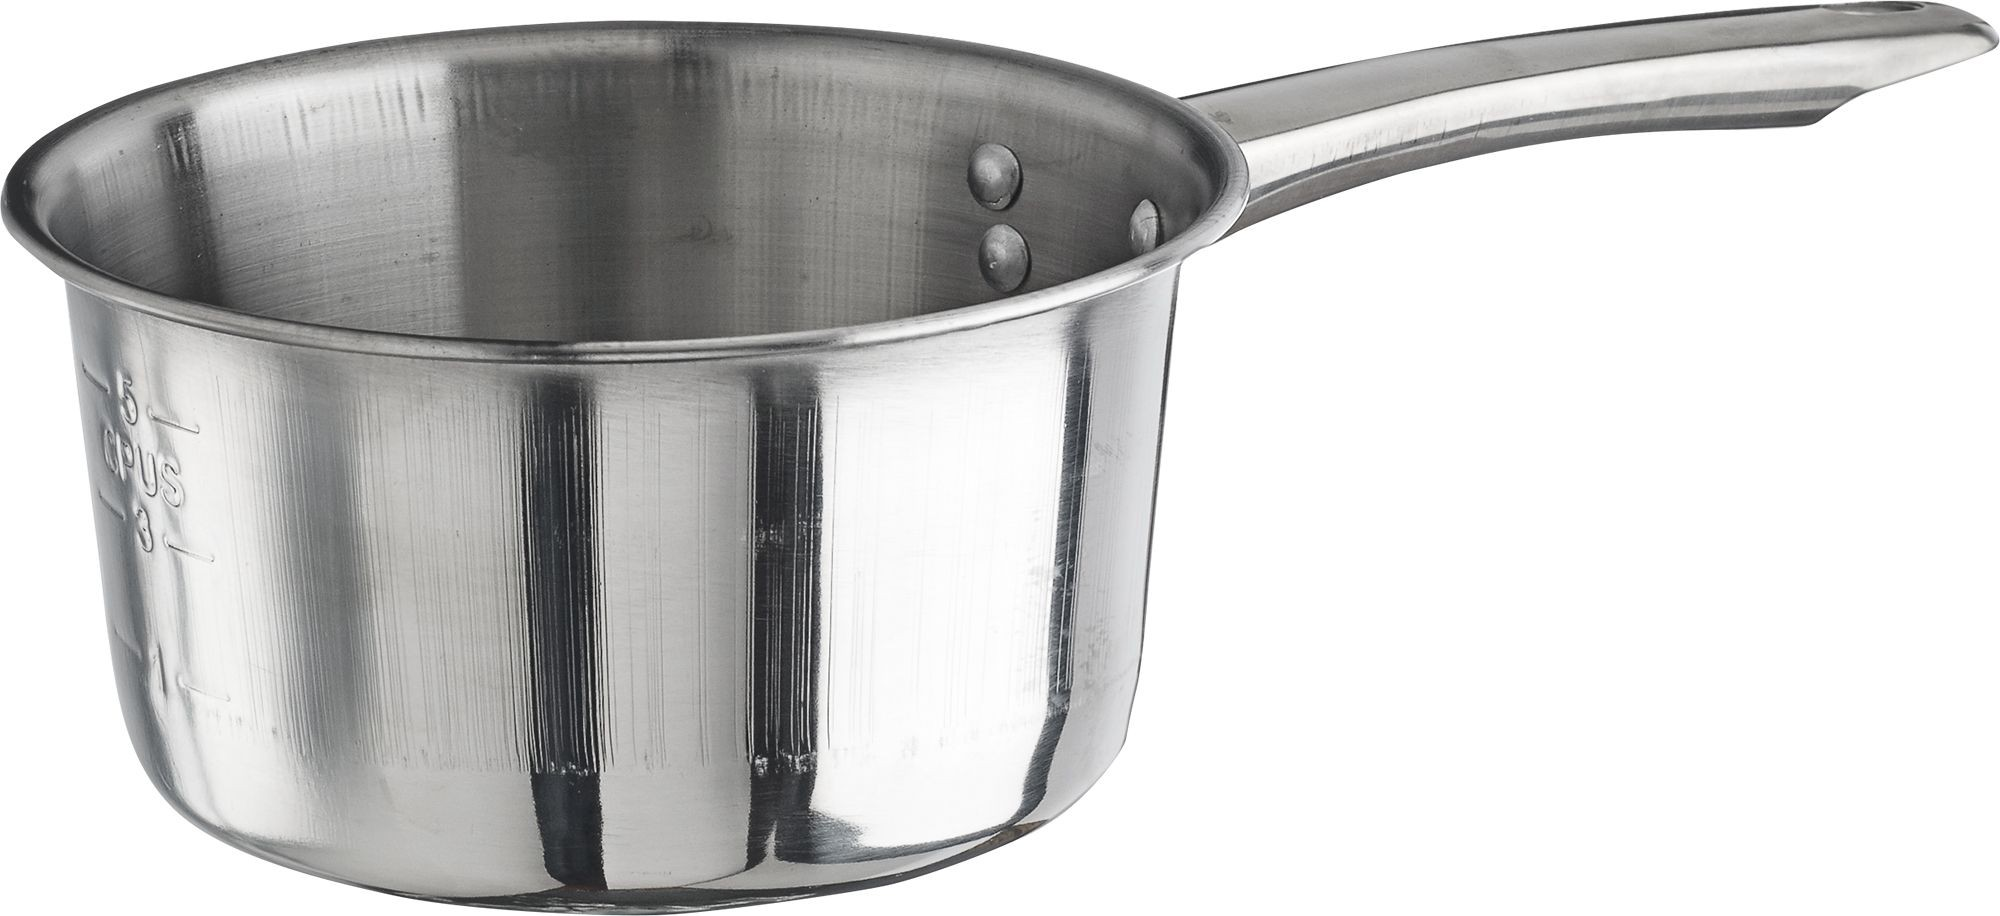 Winco SAP-2 Stainless Steel 2 Qt. Sauce Pan